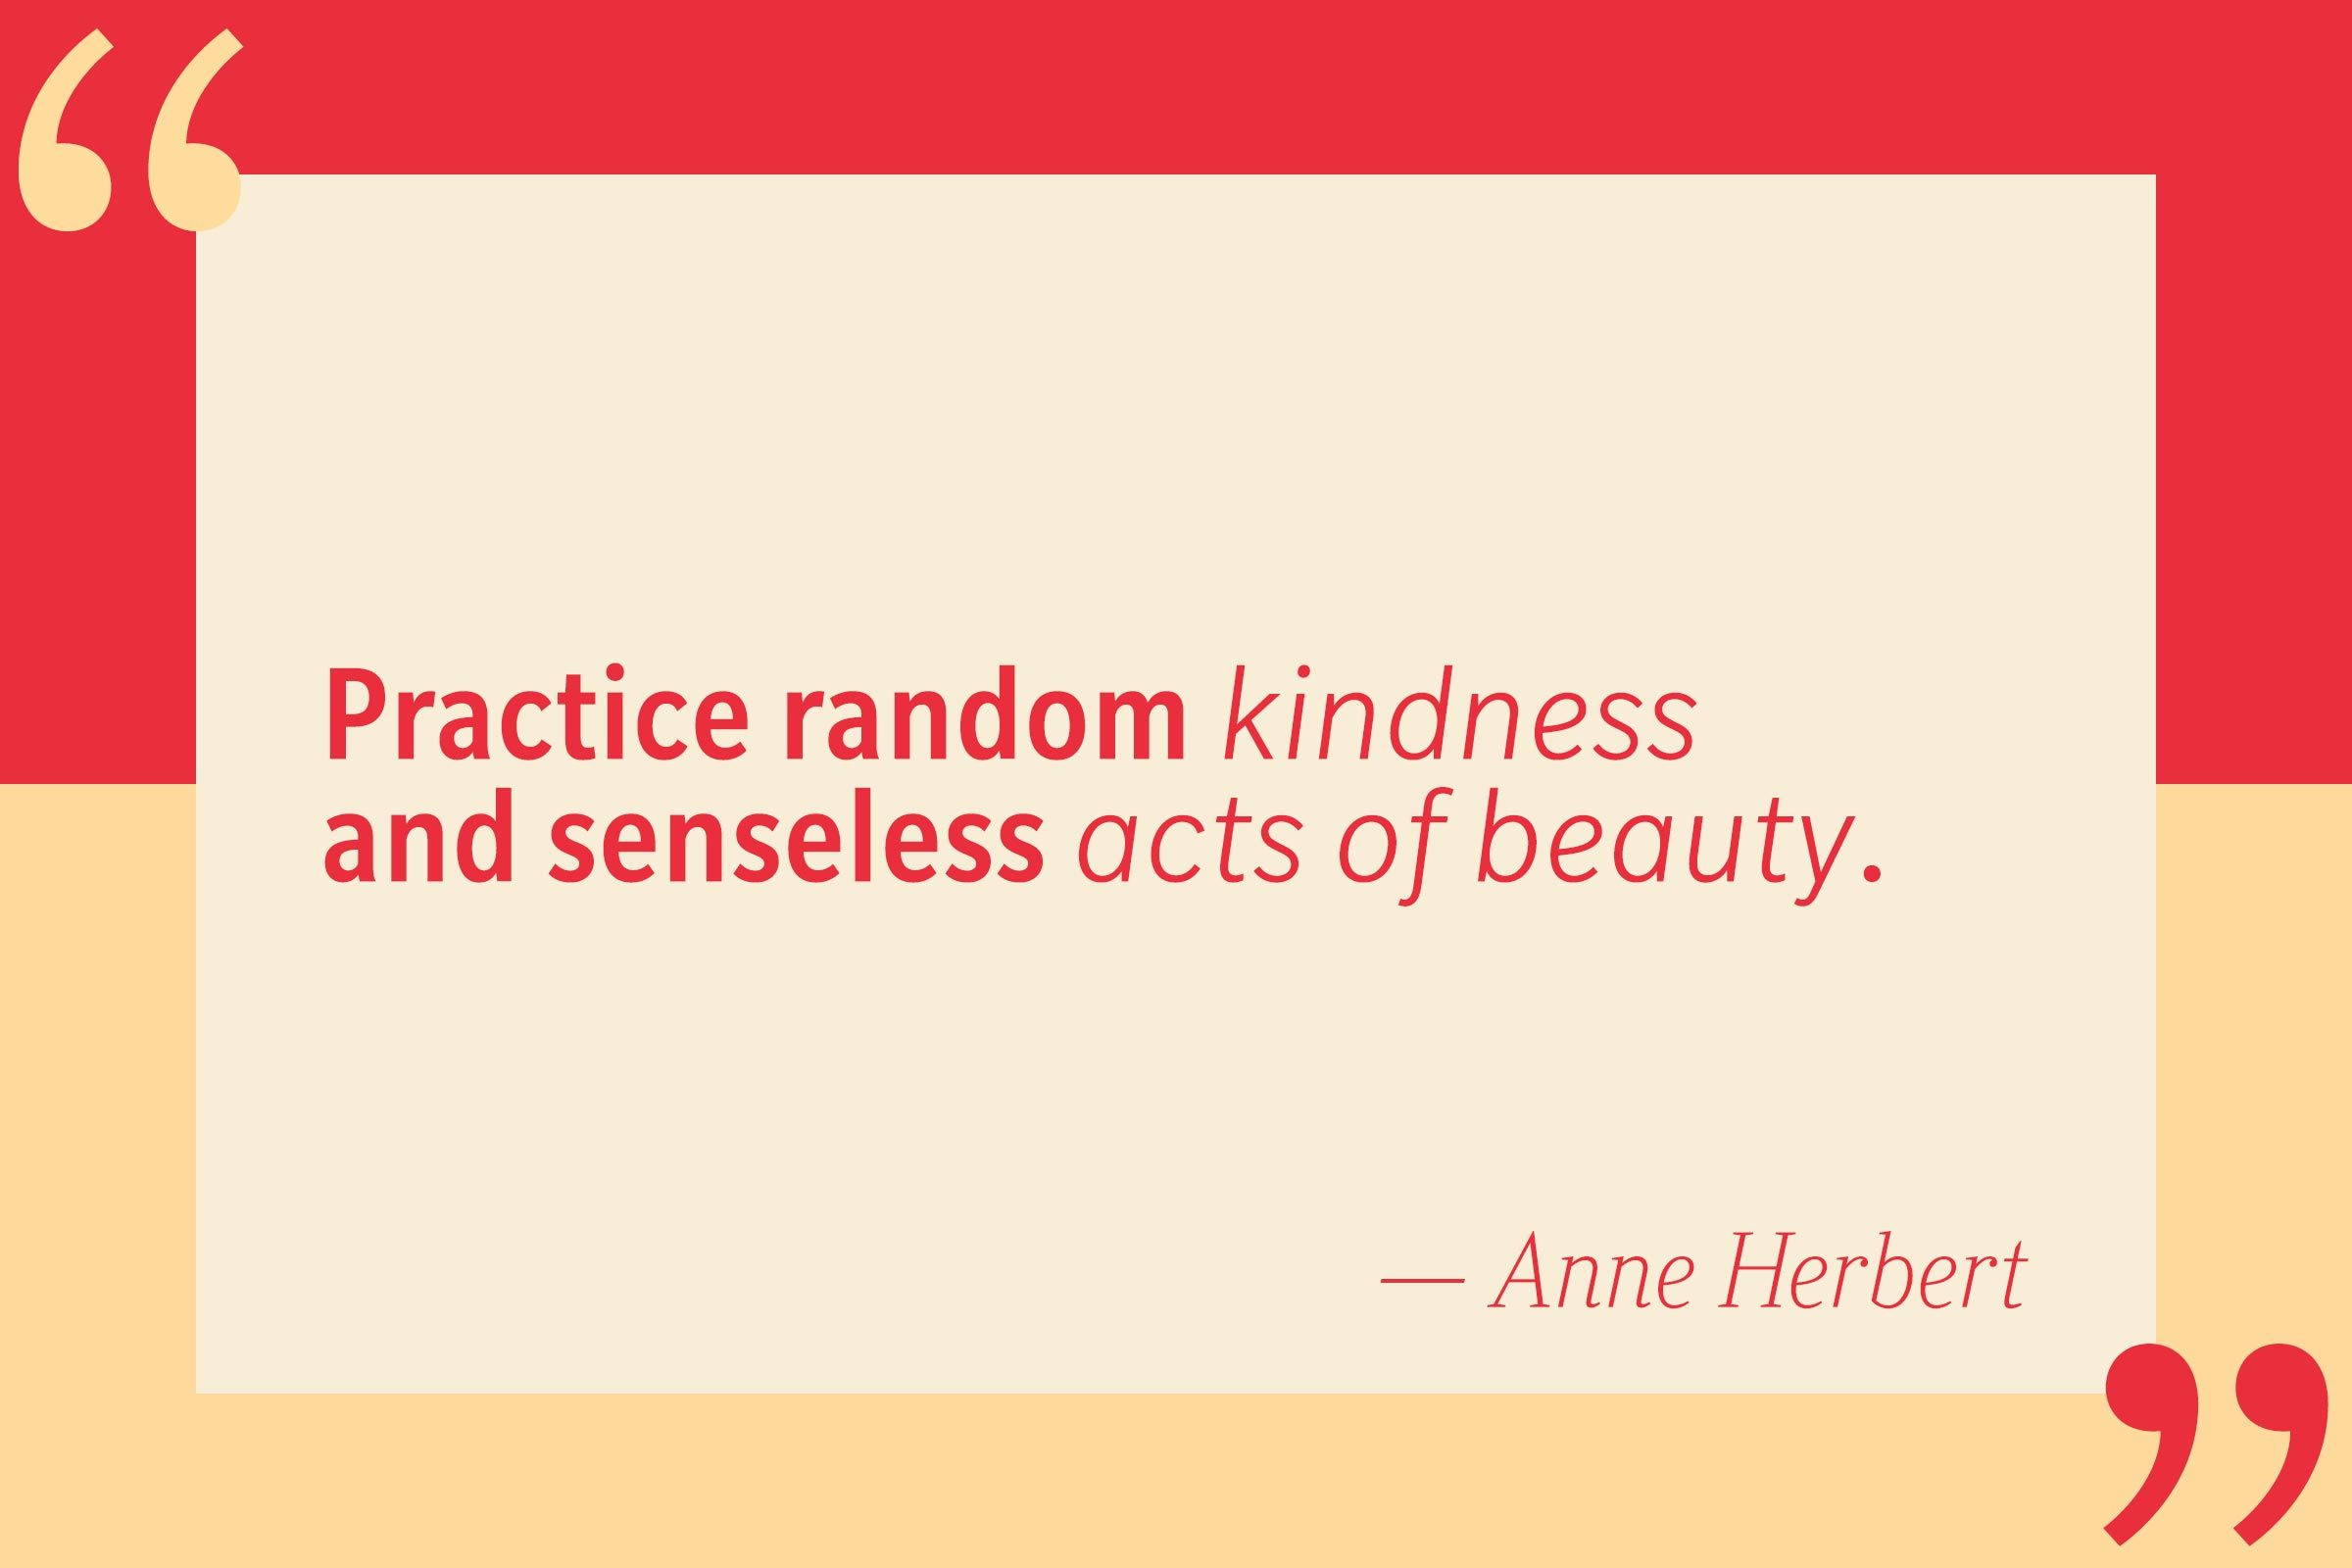 Practice random kindness and senseless acts of beauty. — Anne Herbert